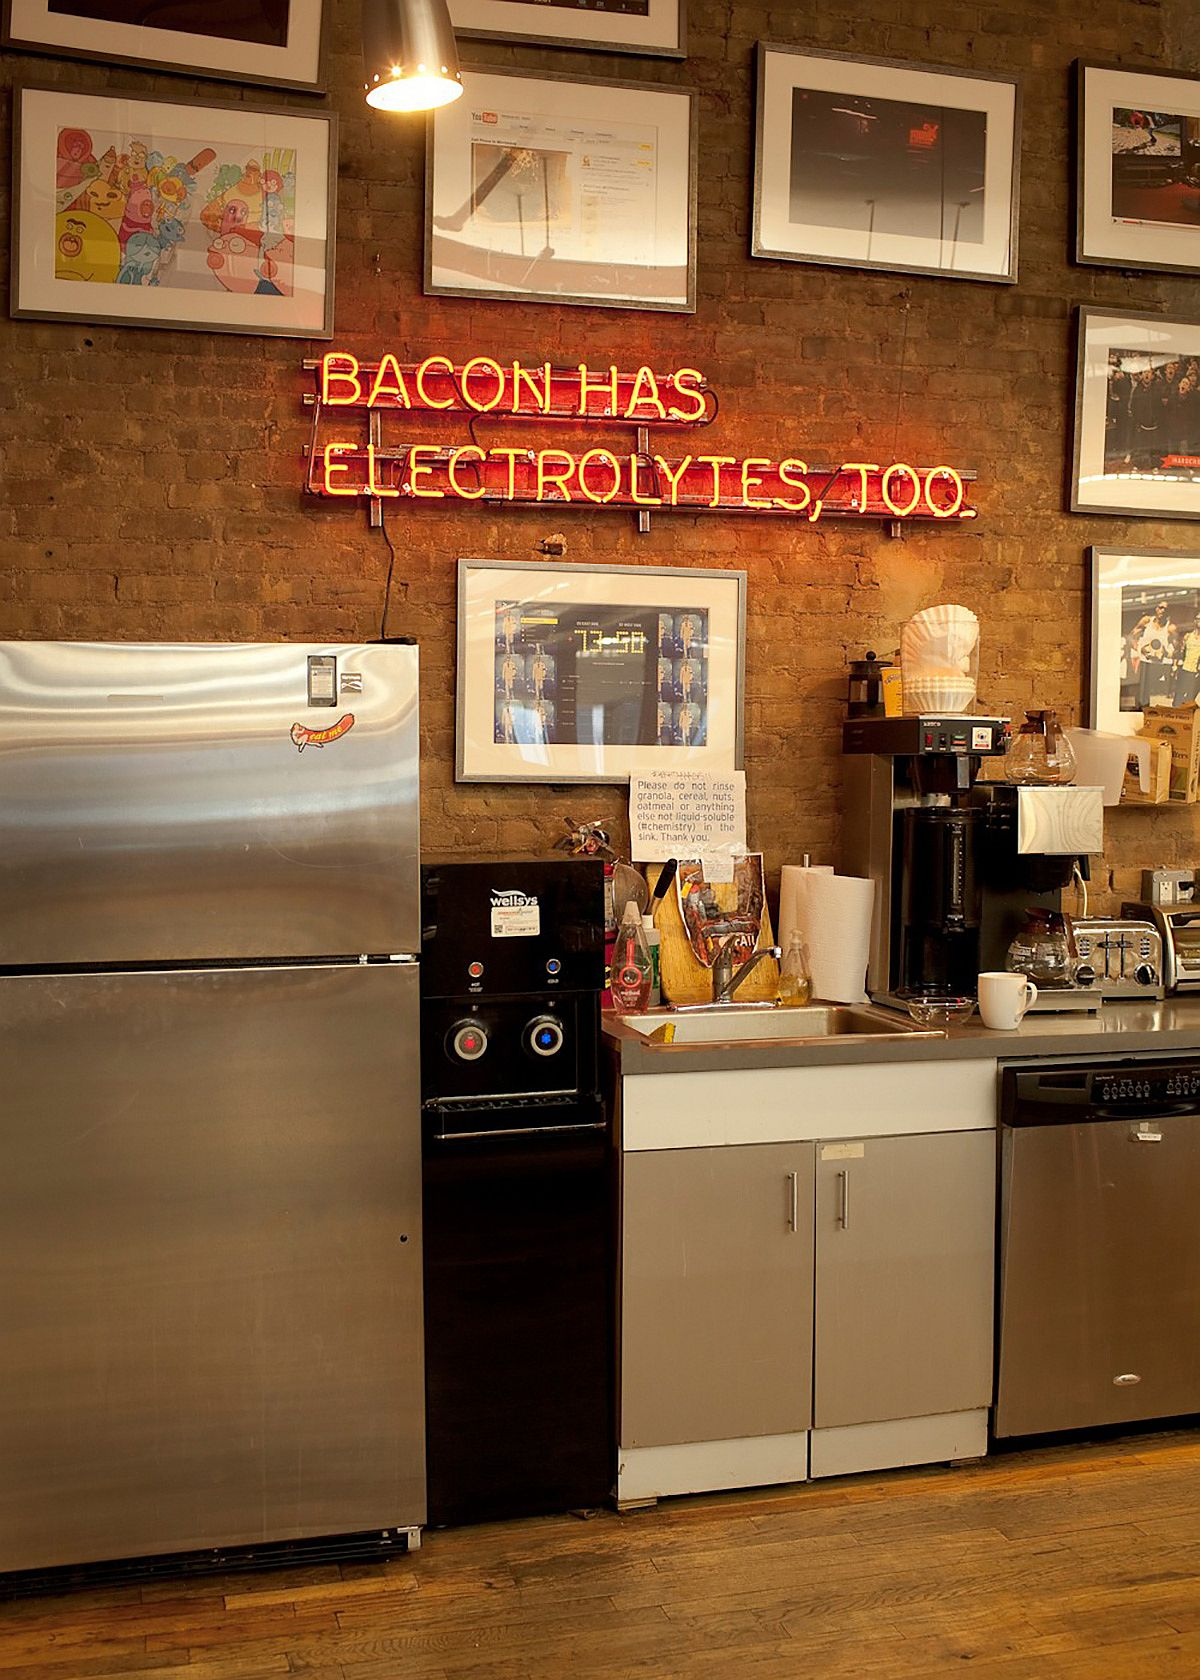 Express your food philosophy with a vintage neon sign in the kitchen